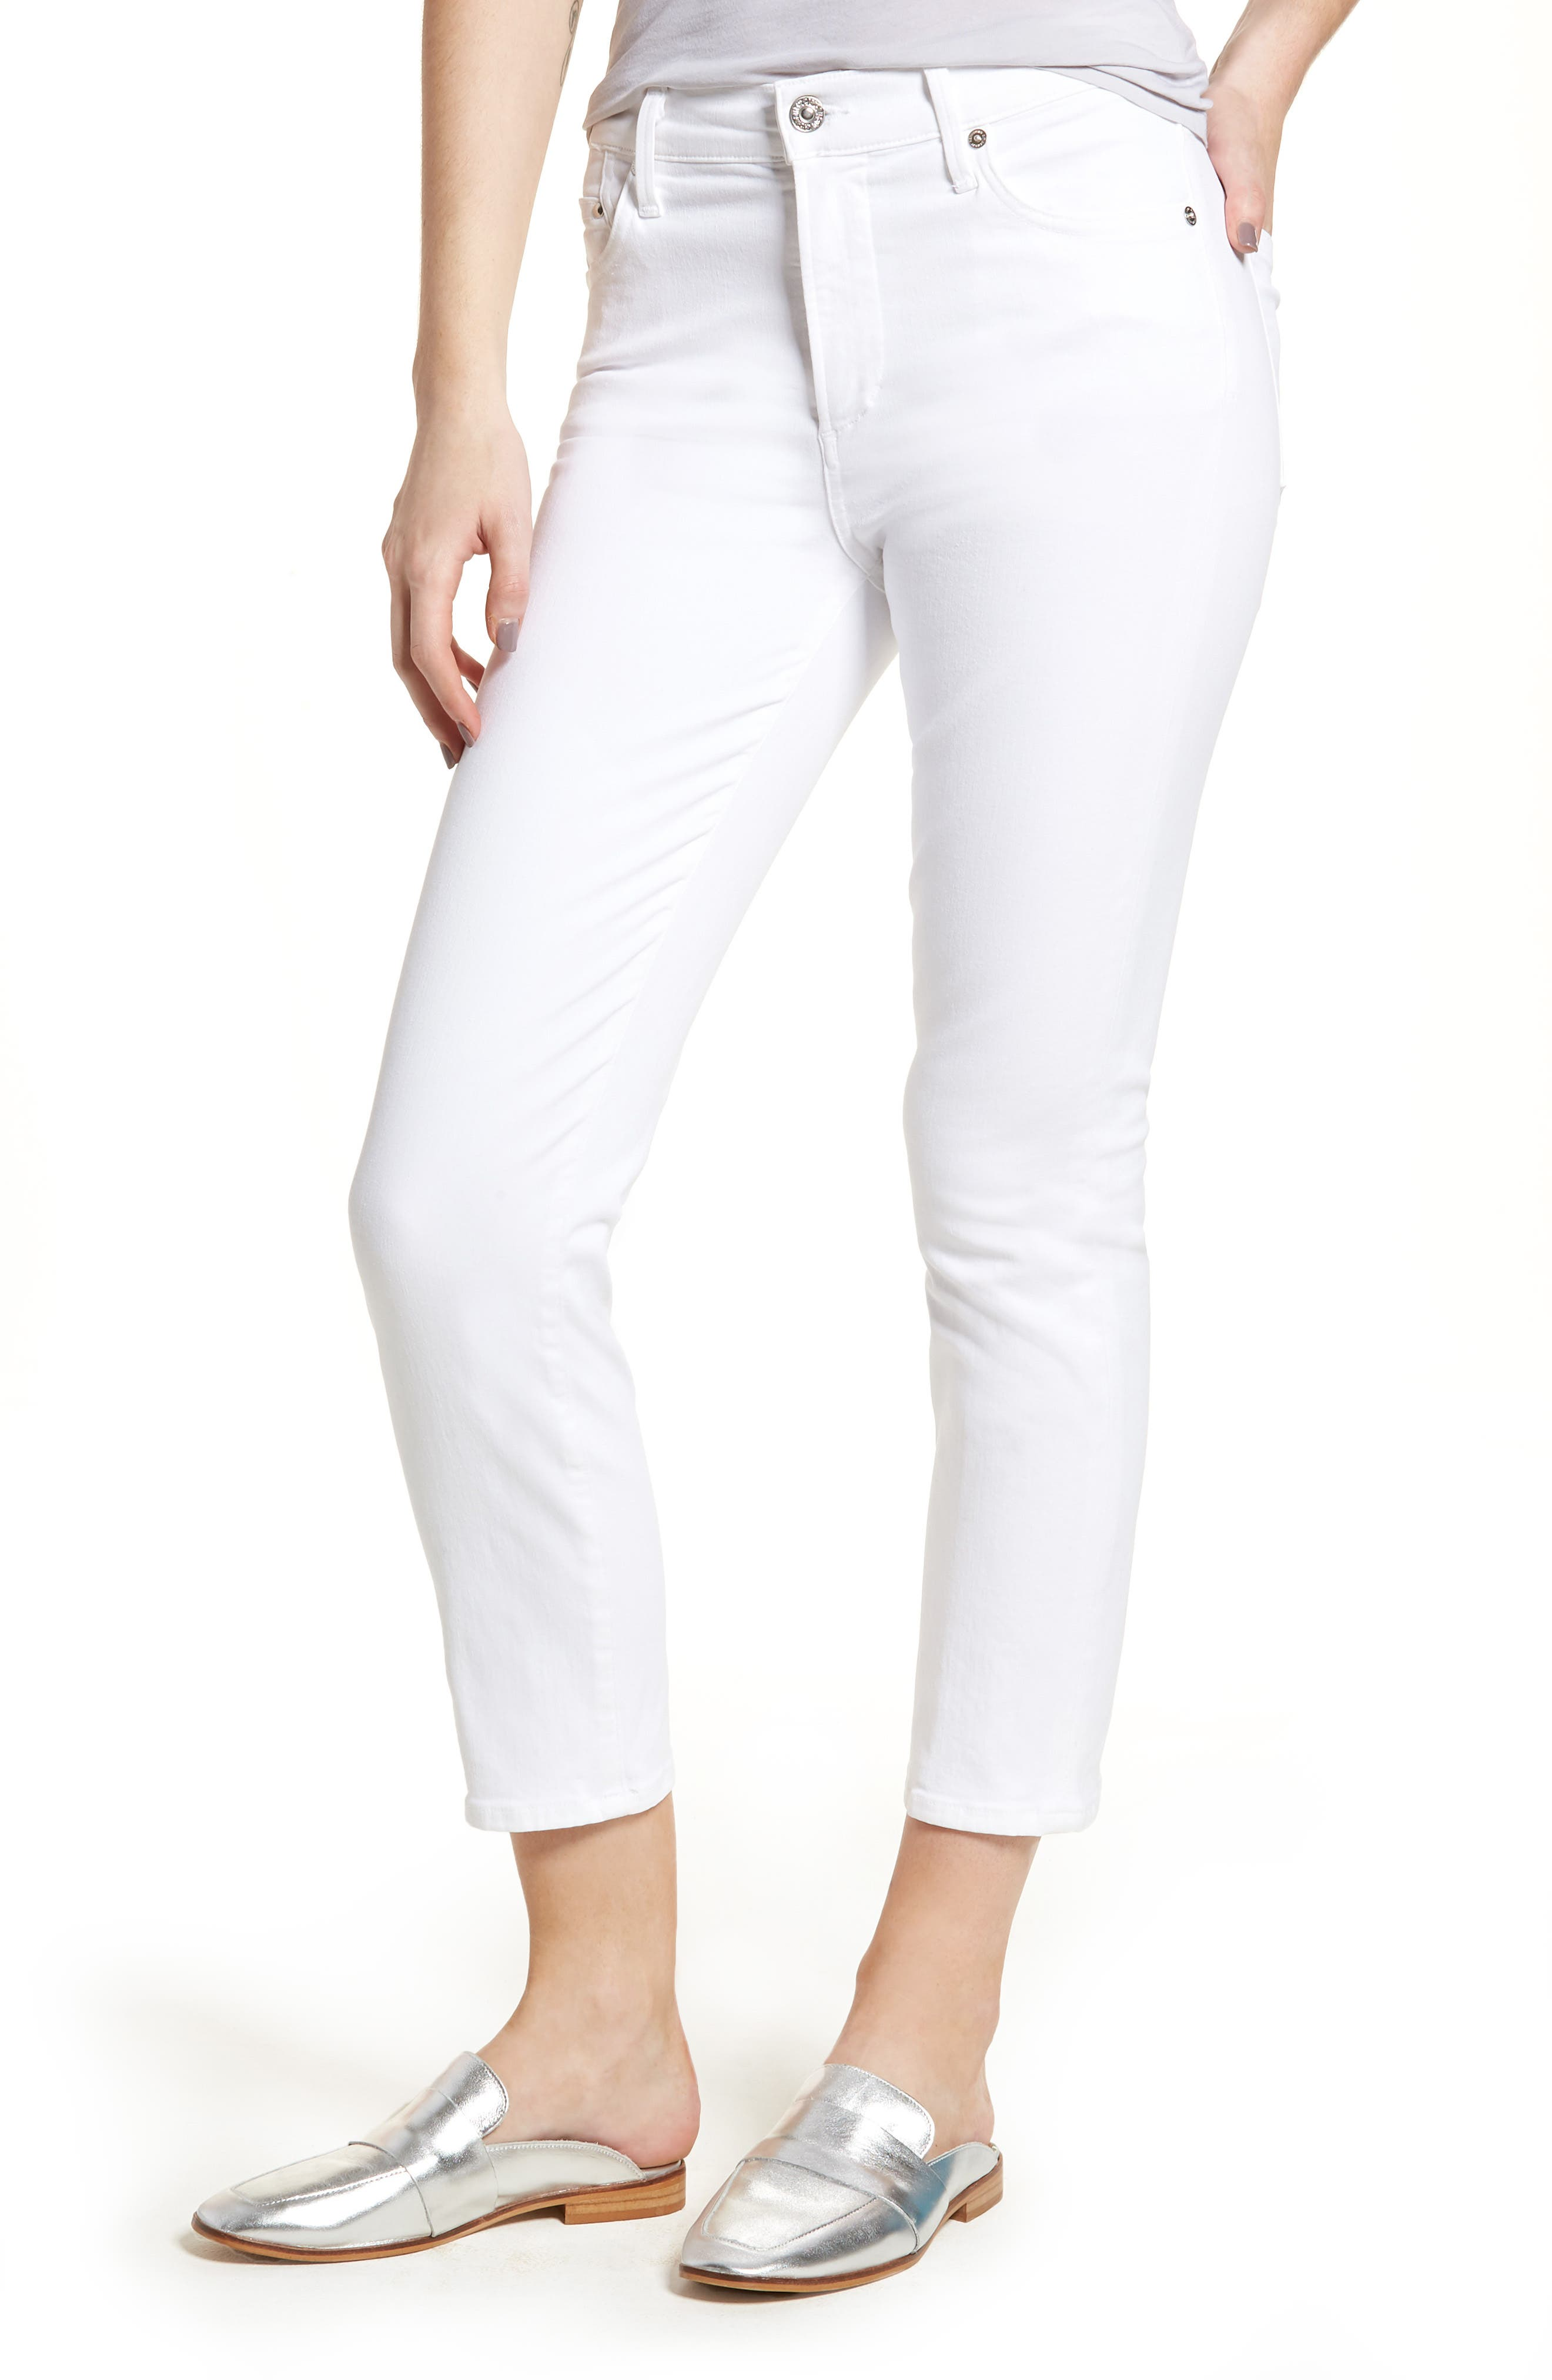 Alternate Image 1 Selected - Citizens of Humanity Cara Ankle Cigarette Jeans (Sculpt White)